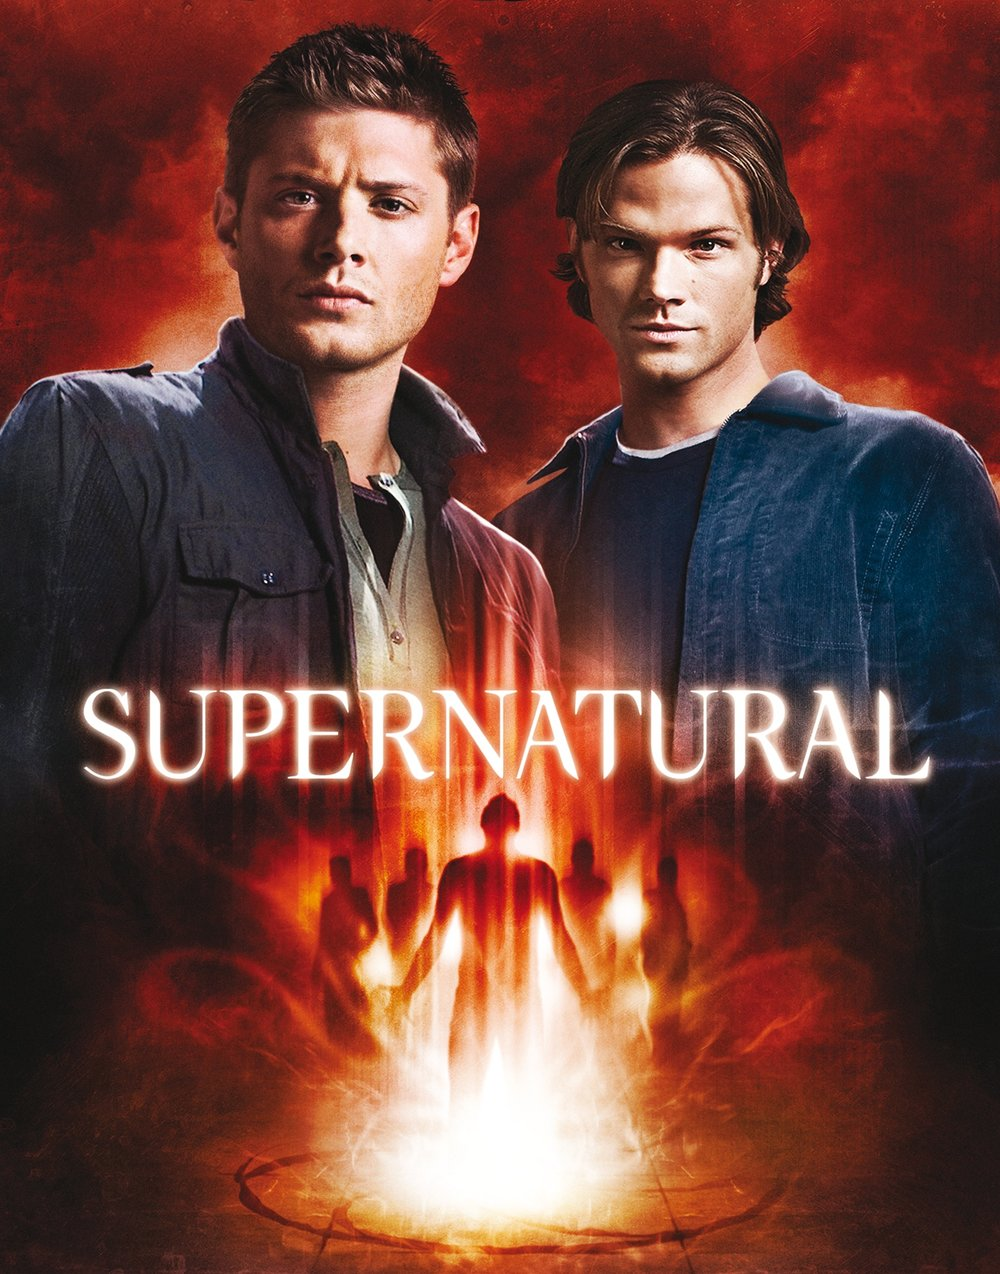 Supernatural_S5_Poster_01.jpeg